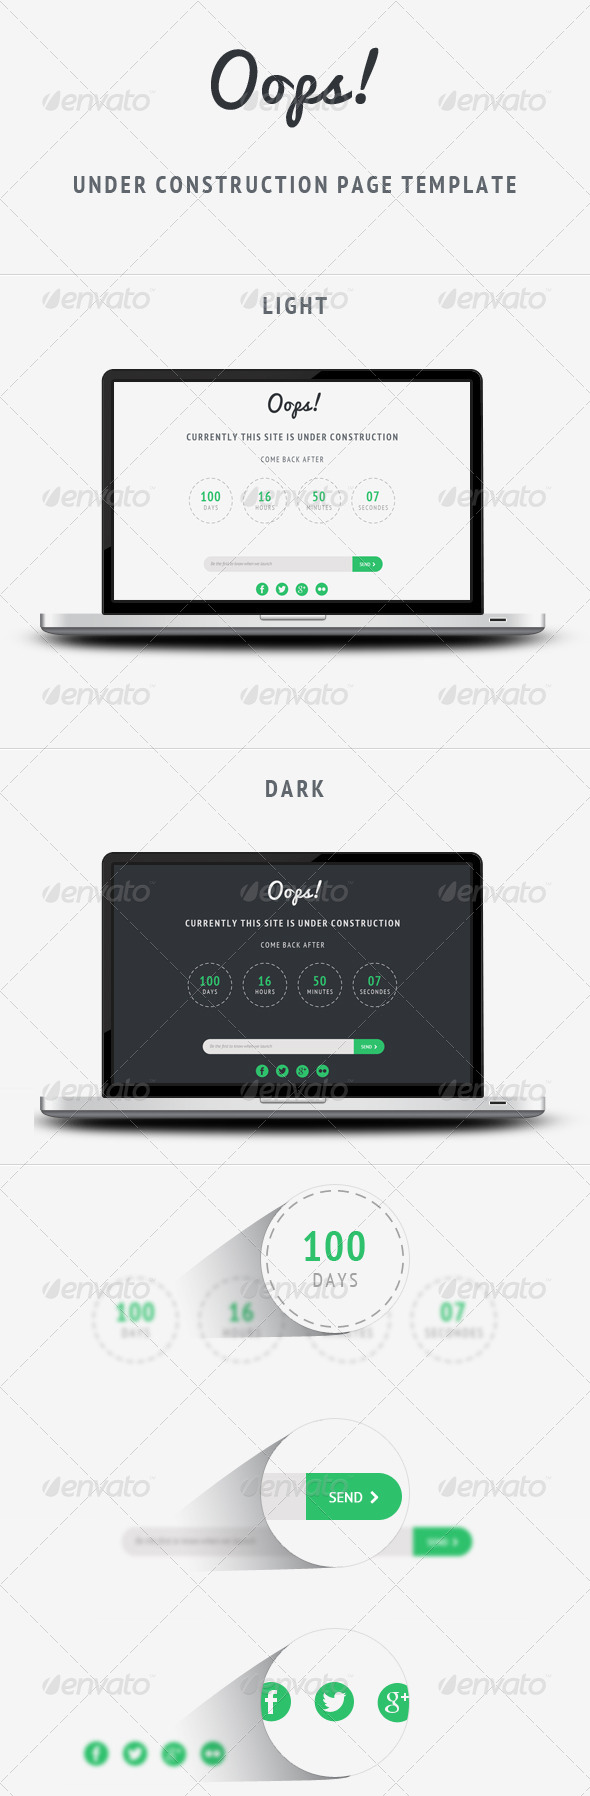 GraphicRiver Oops Under Construction Page Template 6163419